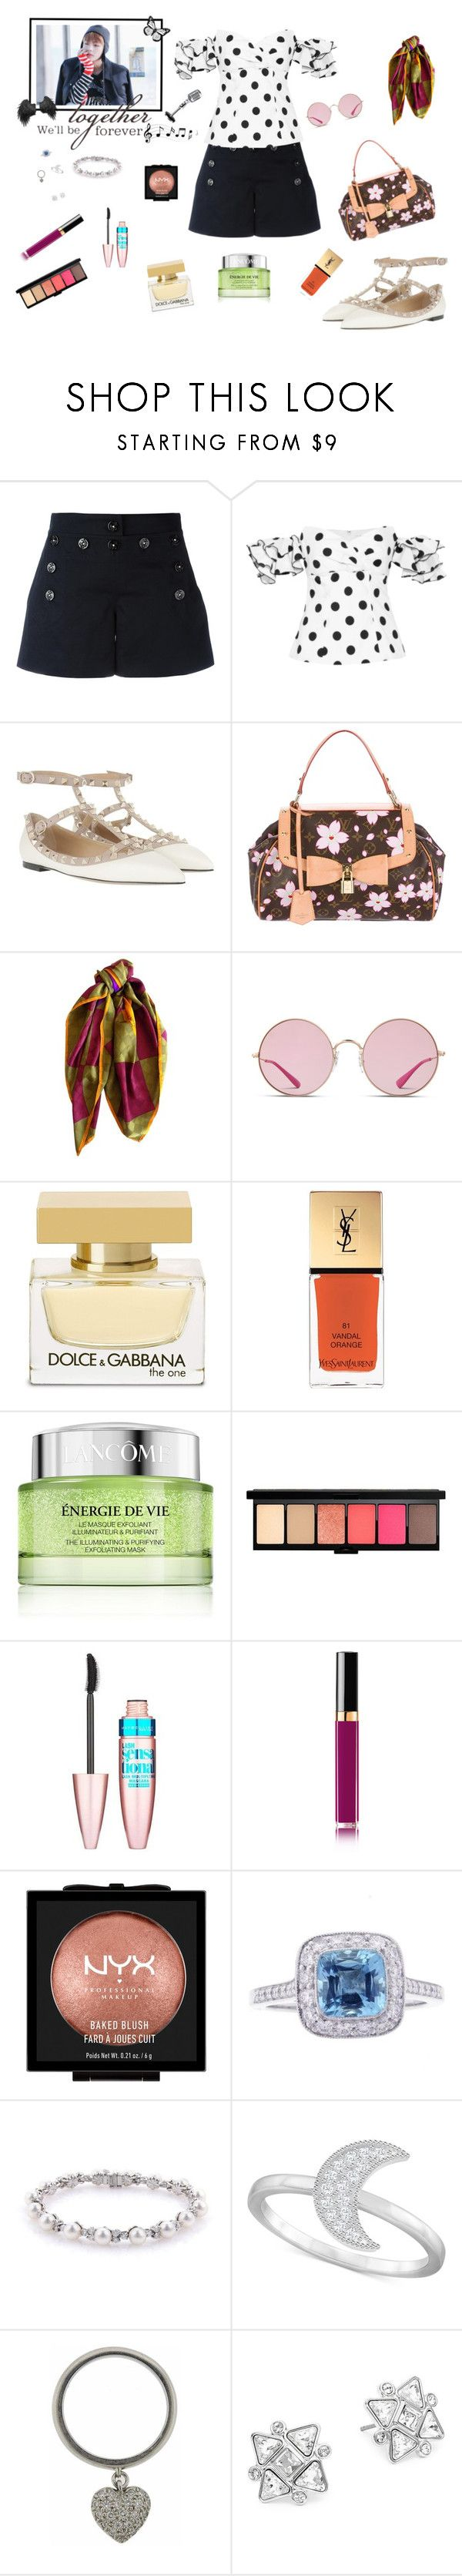 """V's girl - And he called me to watch the training..."" by raven-costa on Polyvore featuring moda, Dolce&Gabbana, Caroline Constas, Valentino, Louis Vuitton, Lanvin, Ray-Ban, Yves Saint Laurent, Lancôme e MAC Cosmetics"